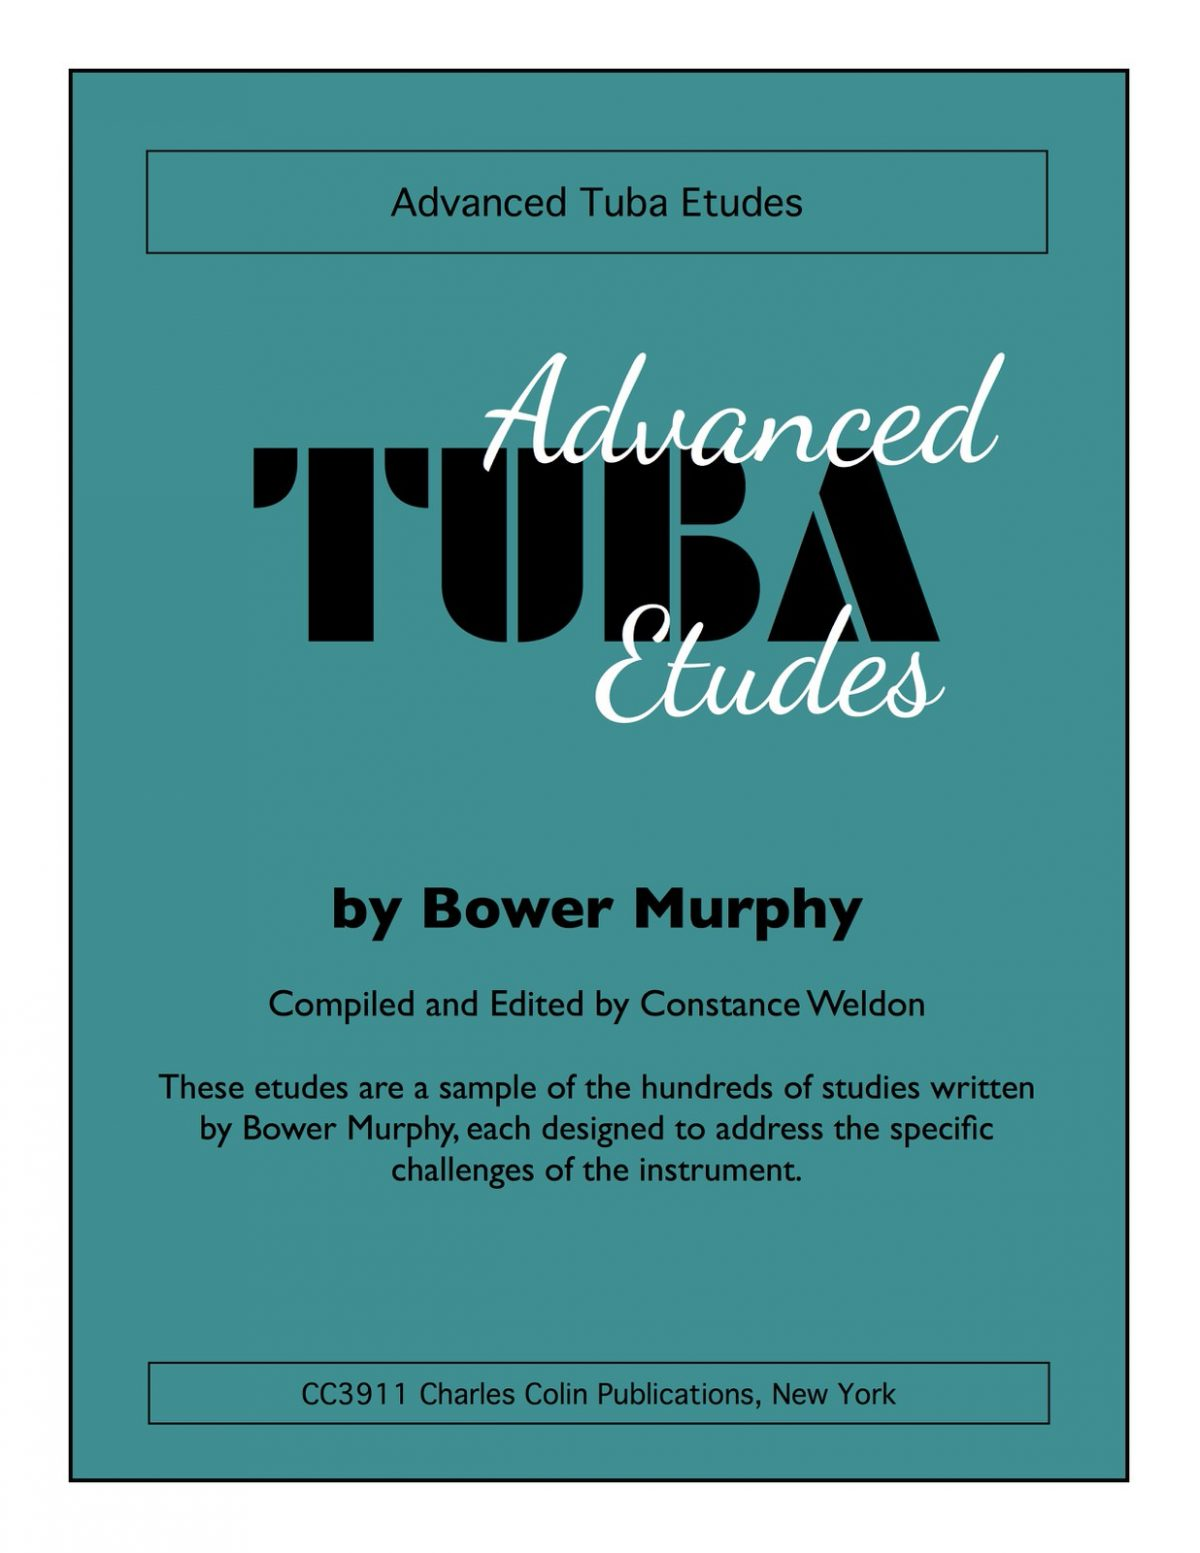 Bower-Murphy, Advanced Tuba Etudes-p01